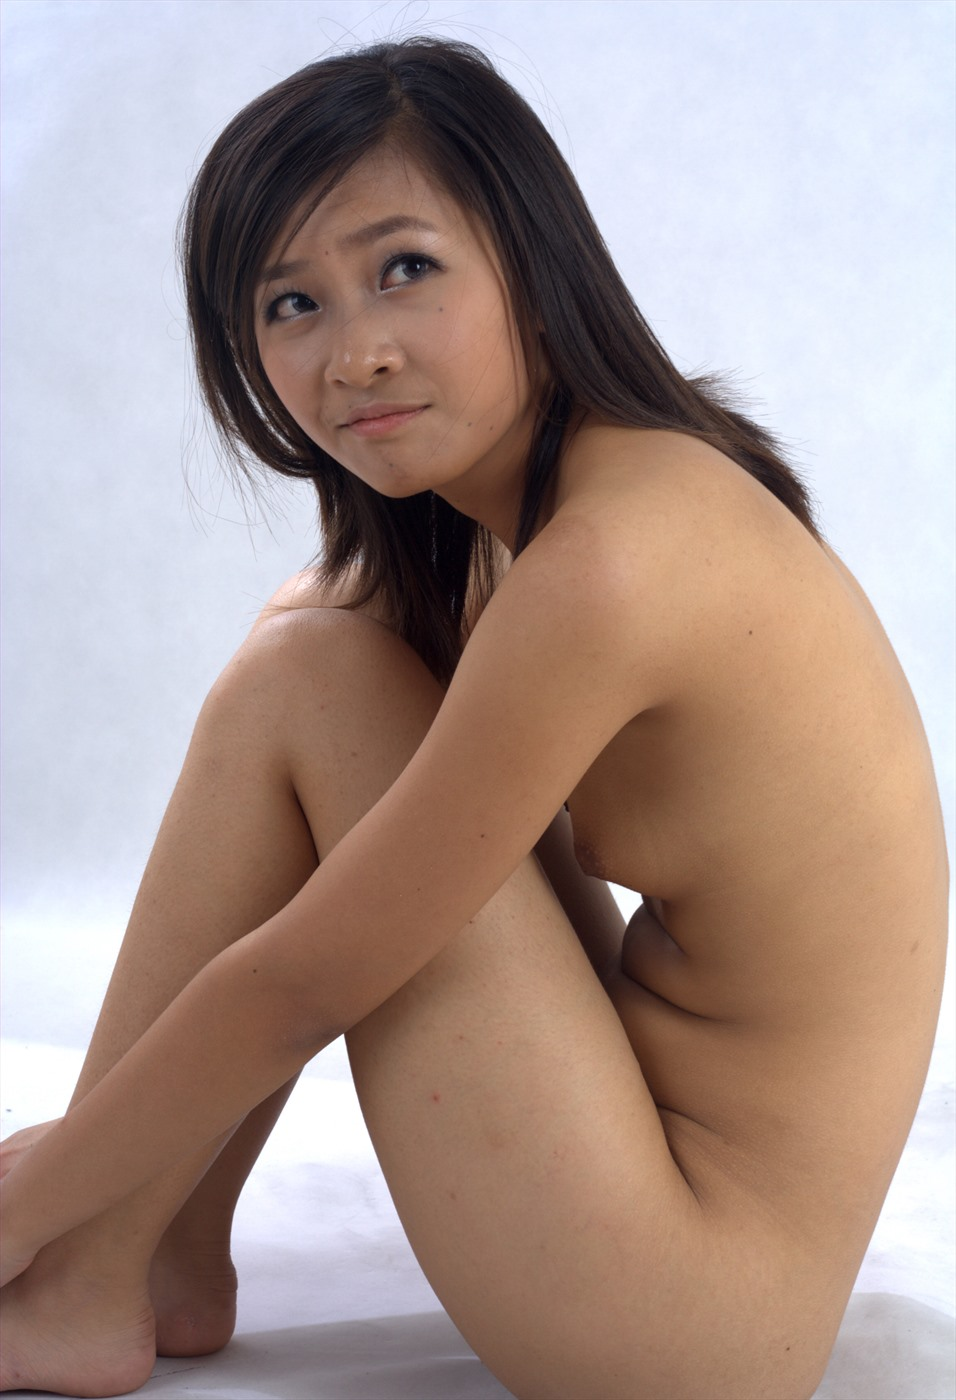 Taiwan model nude pic something